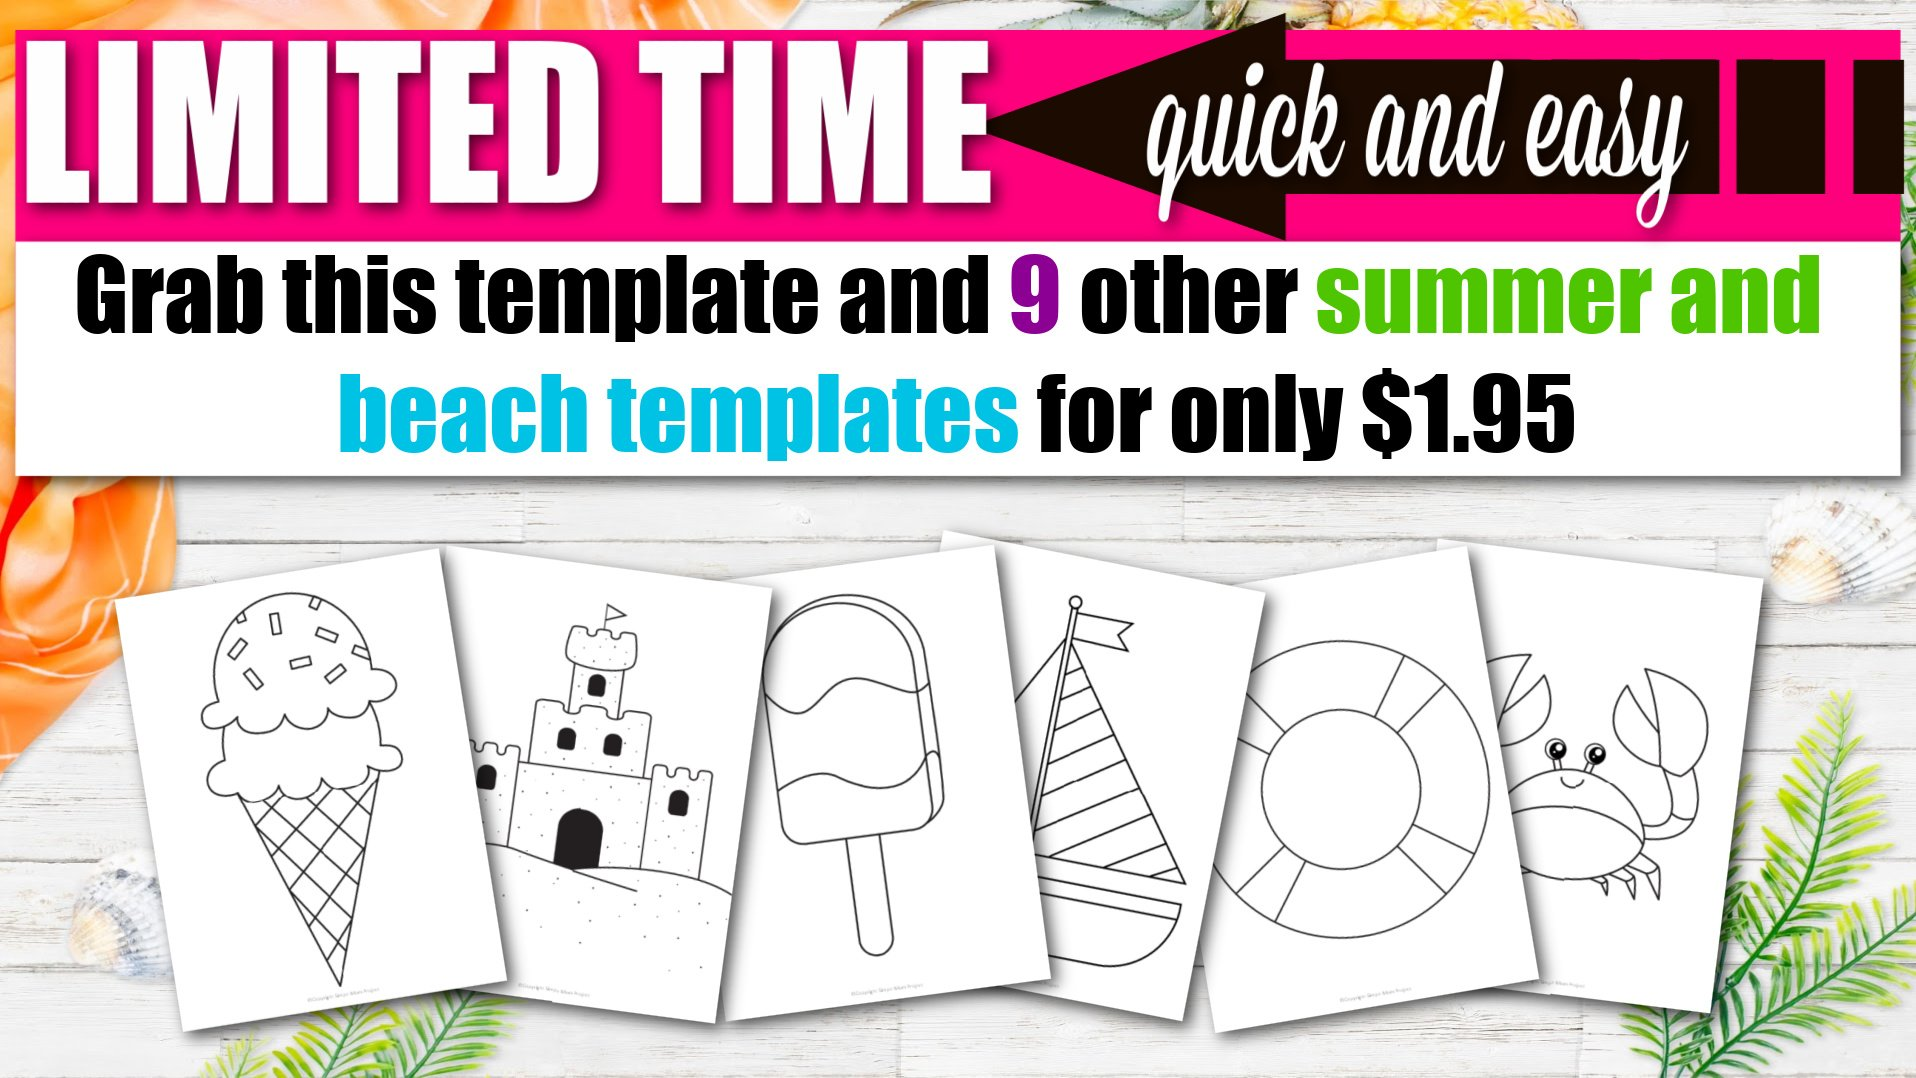 Printable Beach and Summer Templates for Kids preschoolers and toddlers 3